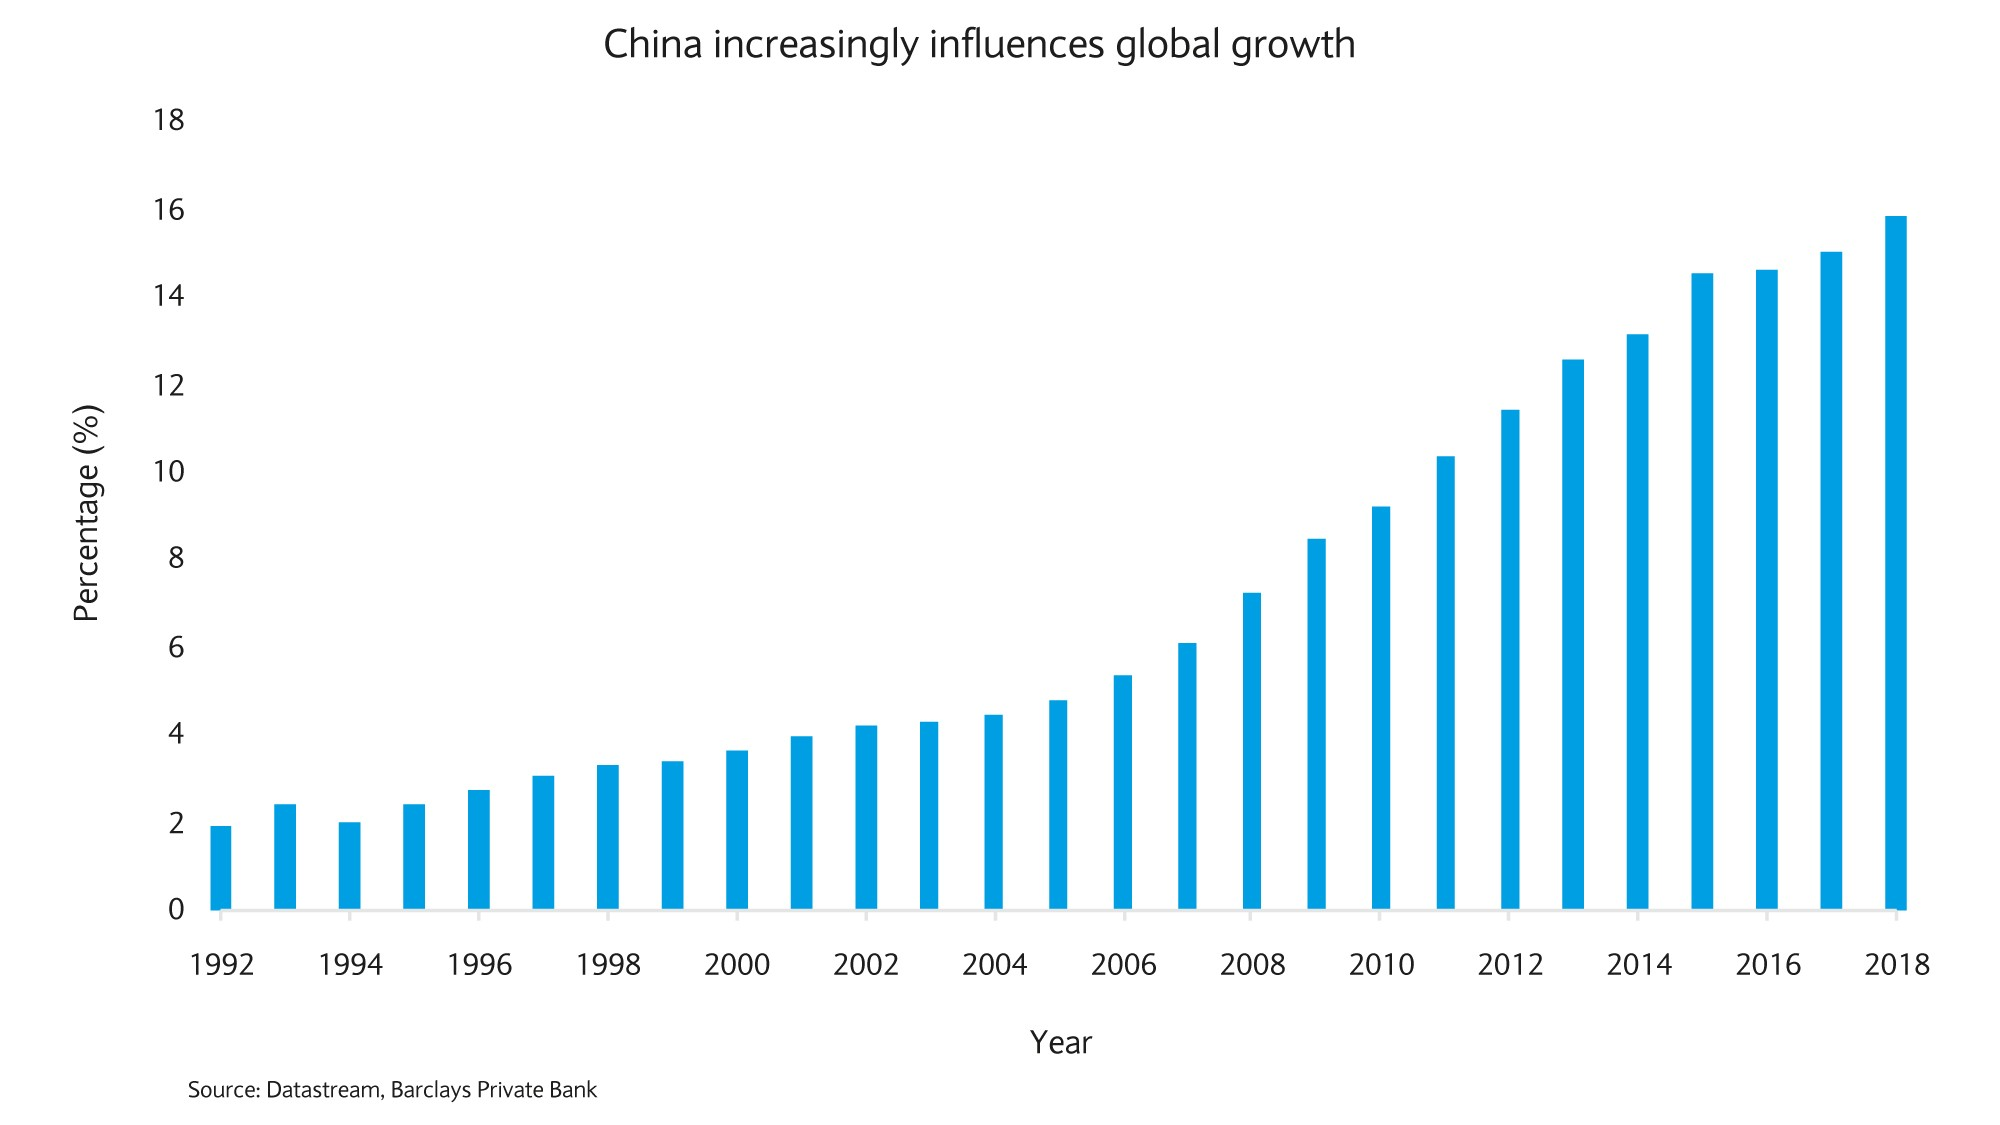 China increasingly influences global growth